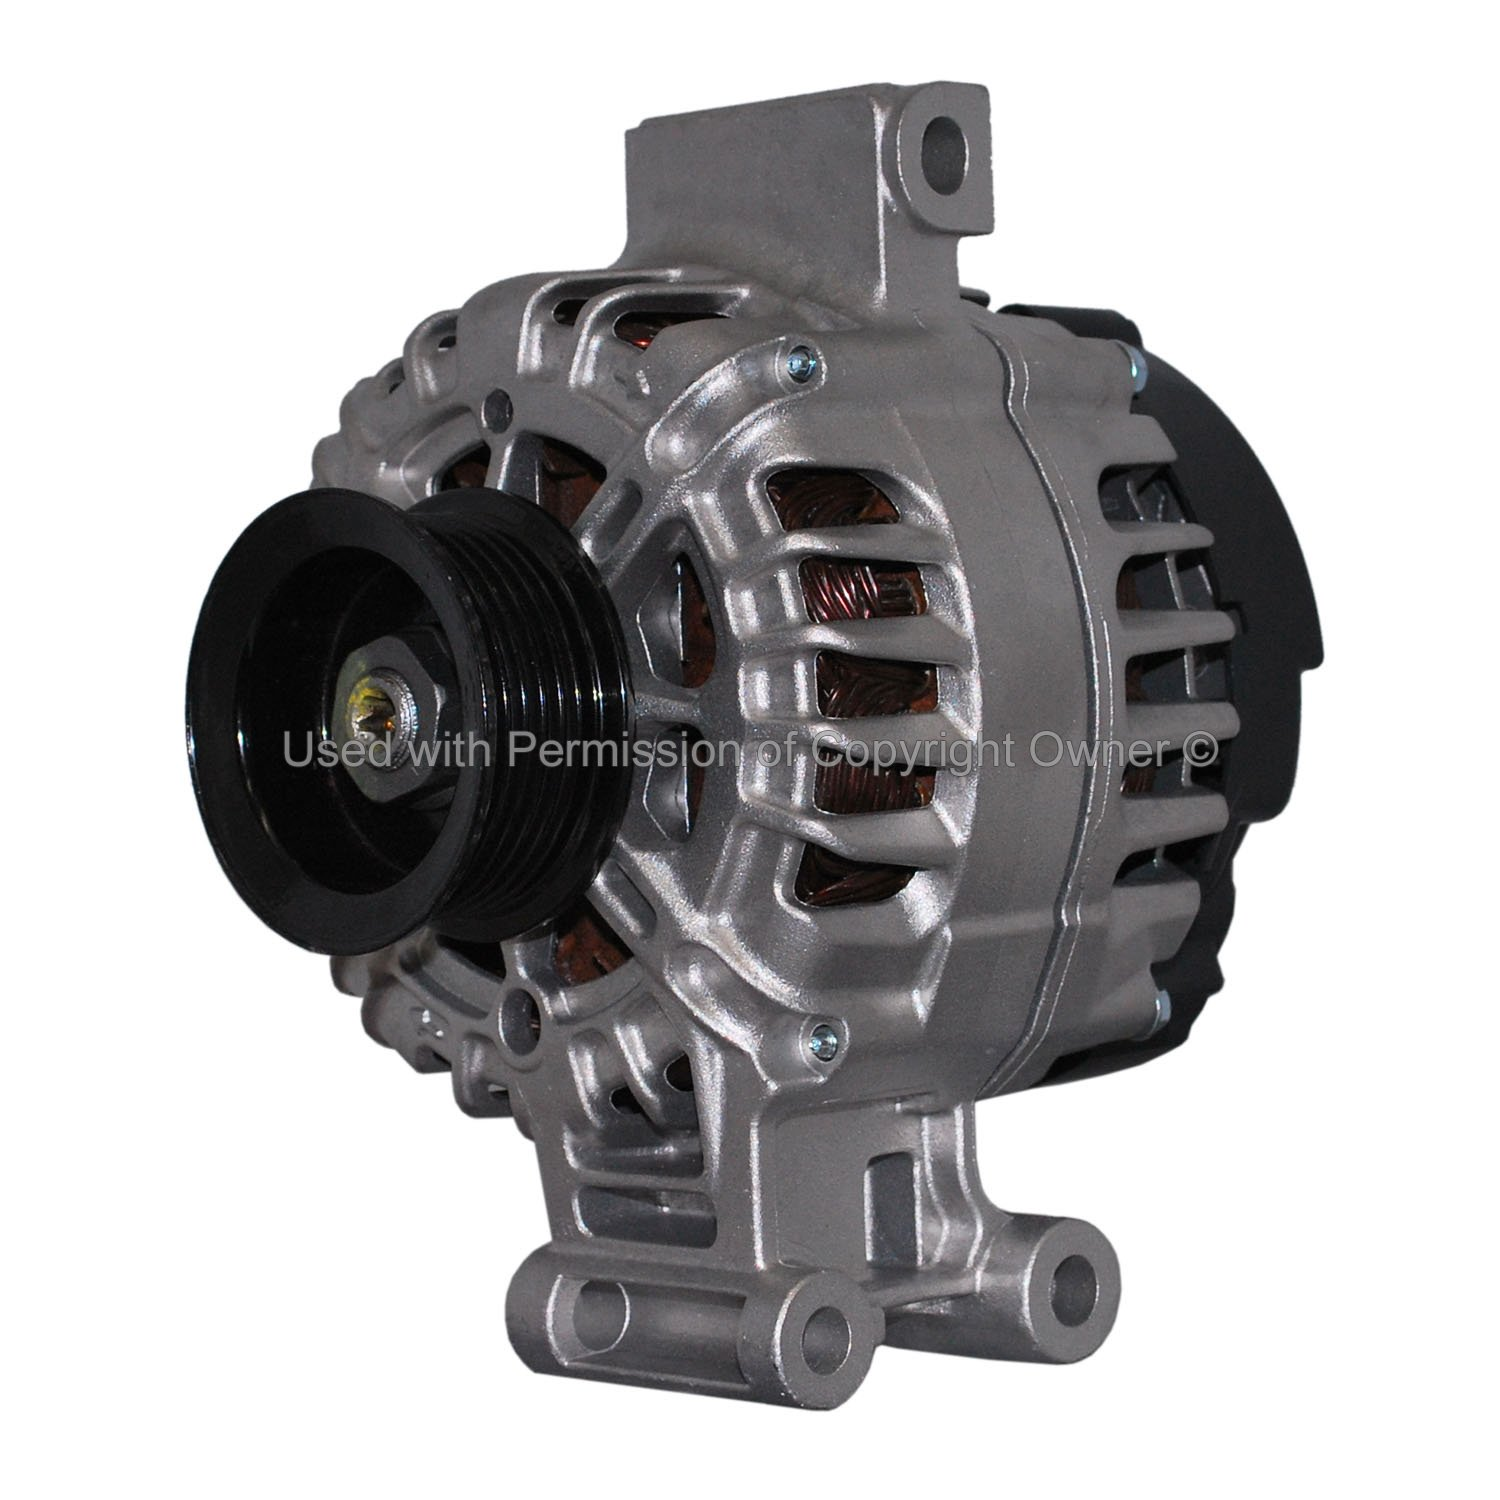 2007 Isuzu I 370 Alternator MA 15735